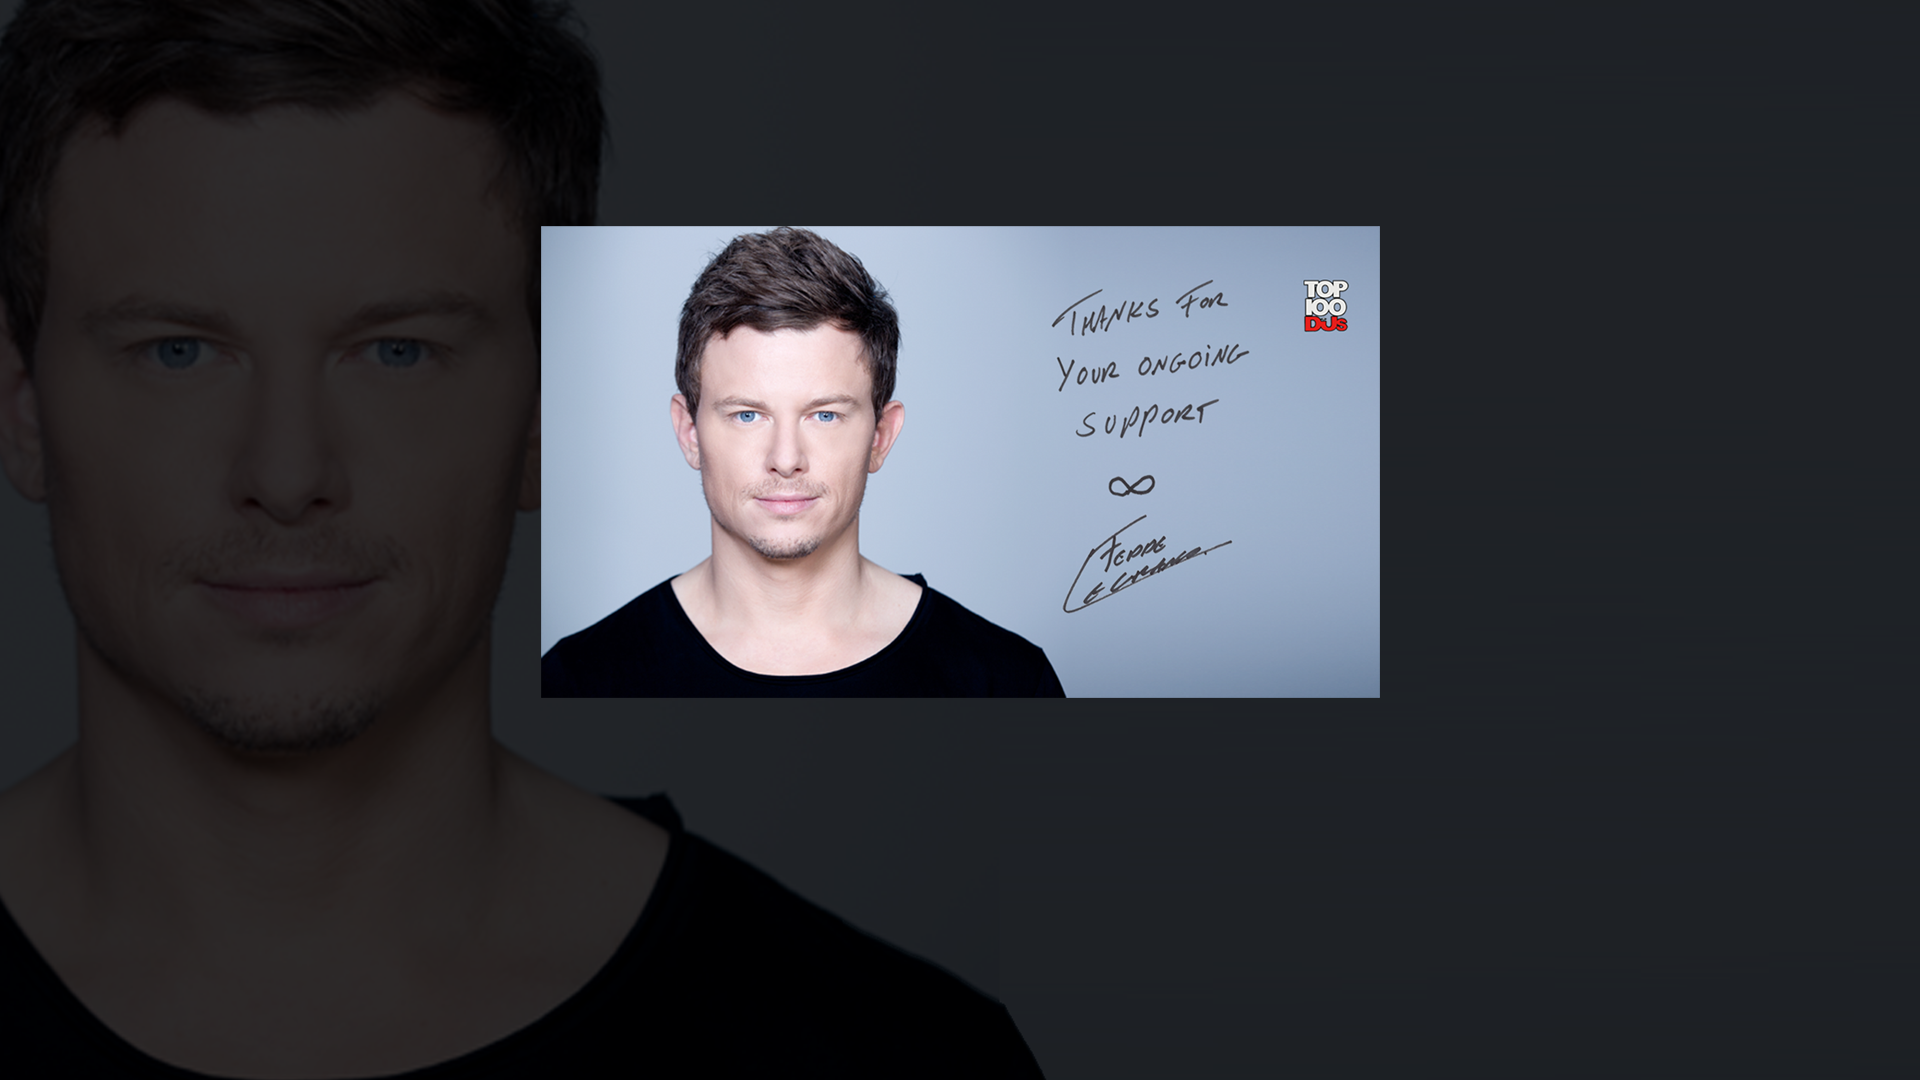 Fedde thanks you for your ongoing support